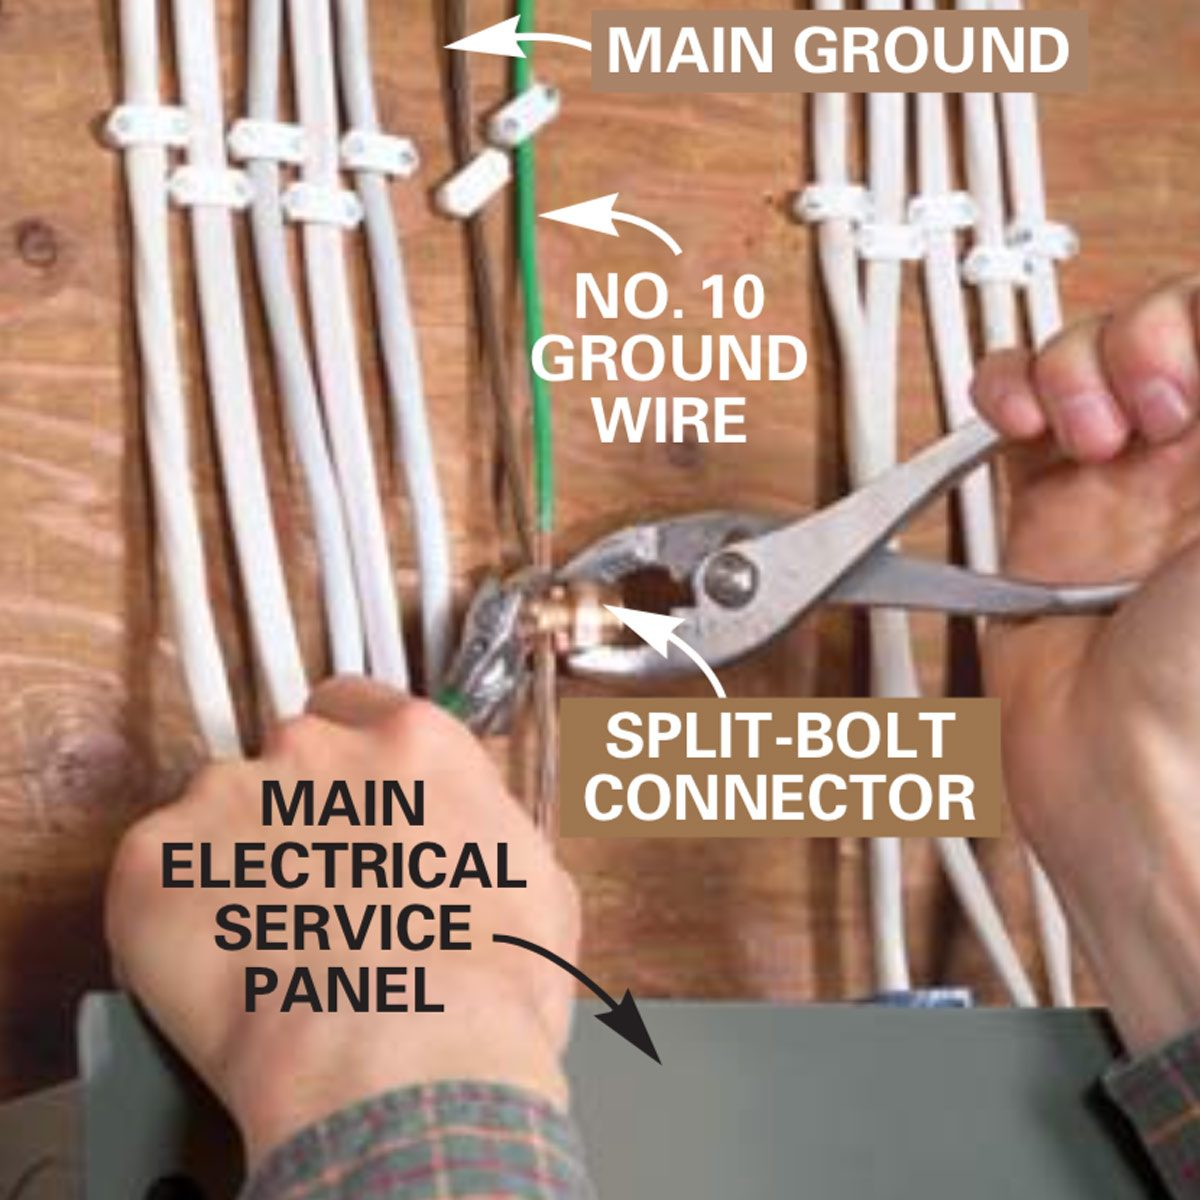 Installing Communication Wiring Family Handyman The These Wires It Can Also Be Used To Create Labels For Your Electrical 10 Ground Wire With A Grounding Screw Bottom Of Box Photo 14 And Main Line Home Service Panel Split Bolt